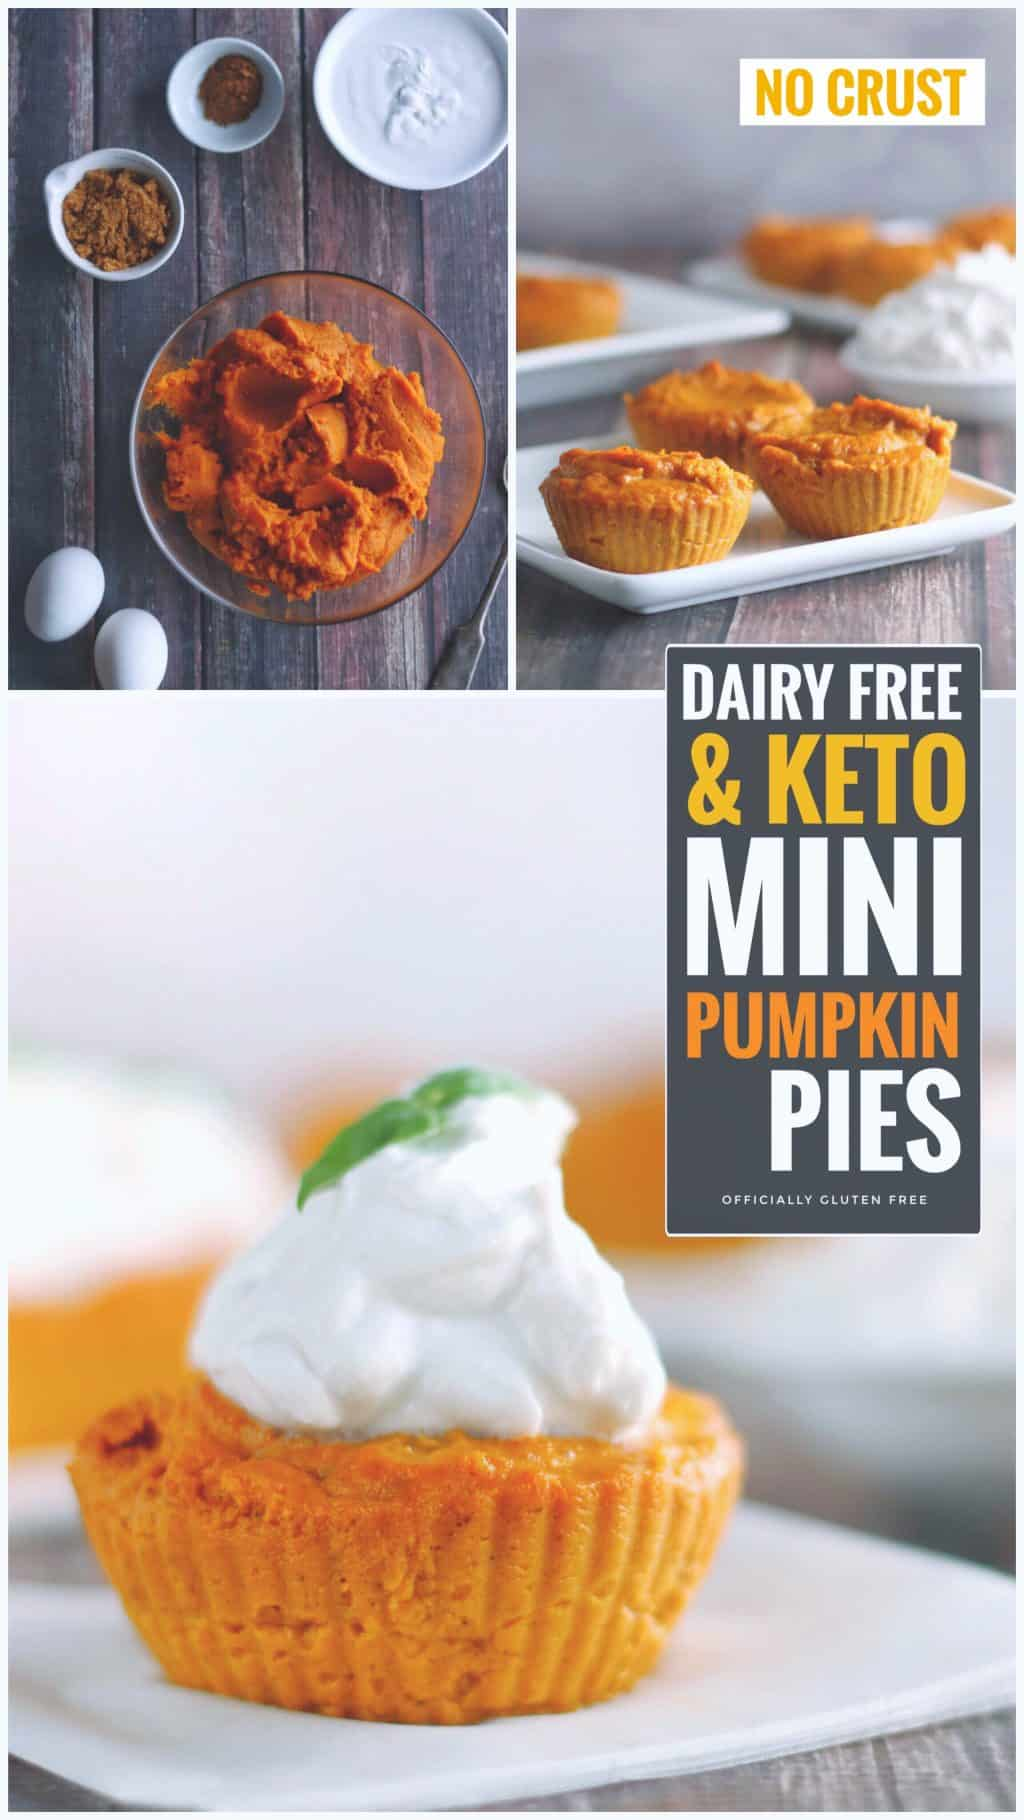 Keto and Dairy Free Mini Pumpkin Pies {No Crust}